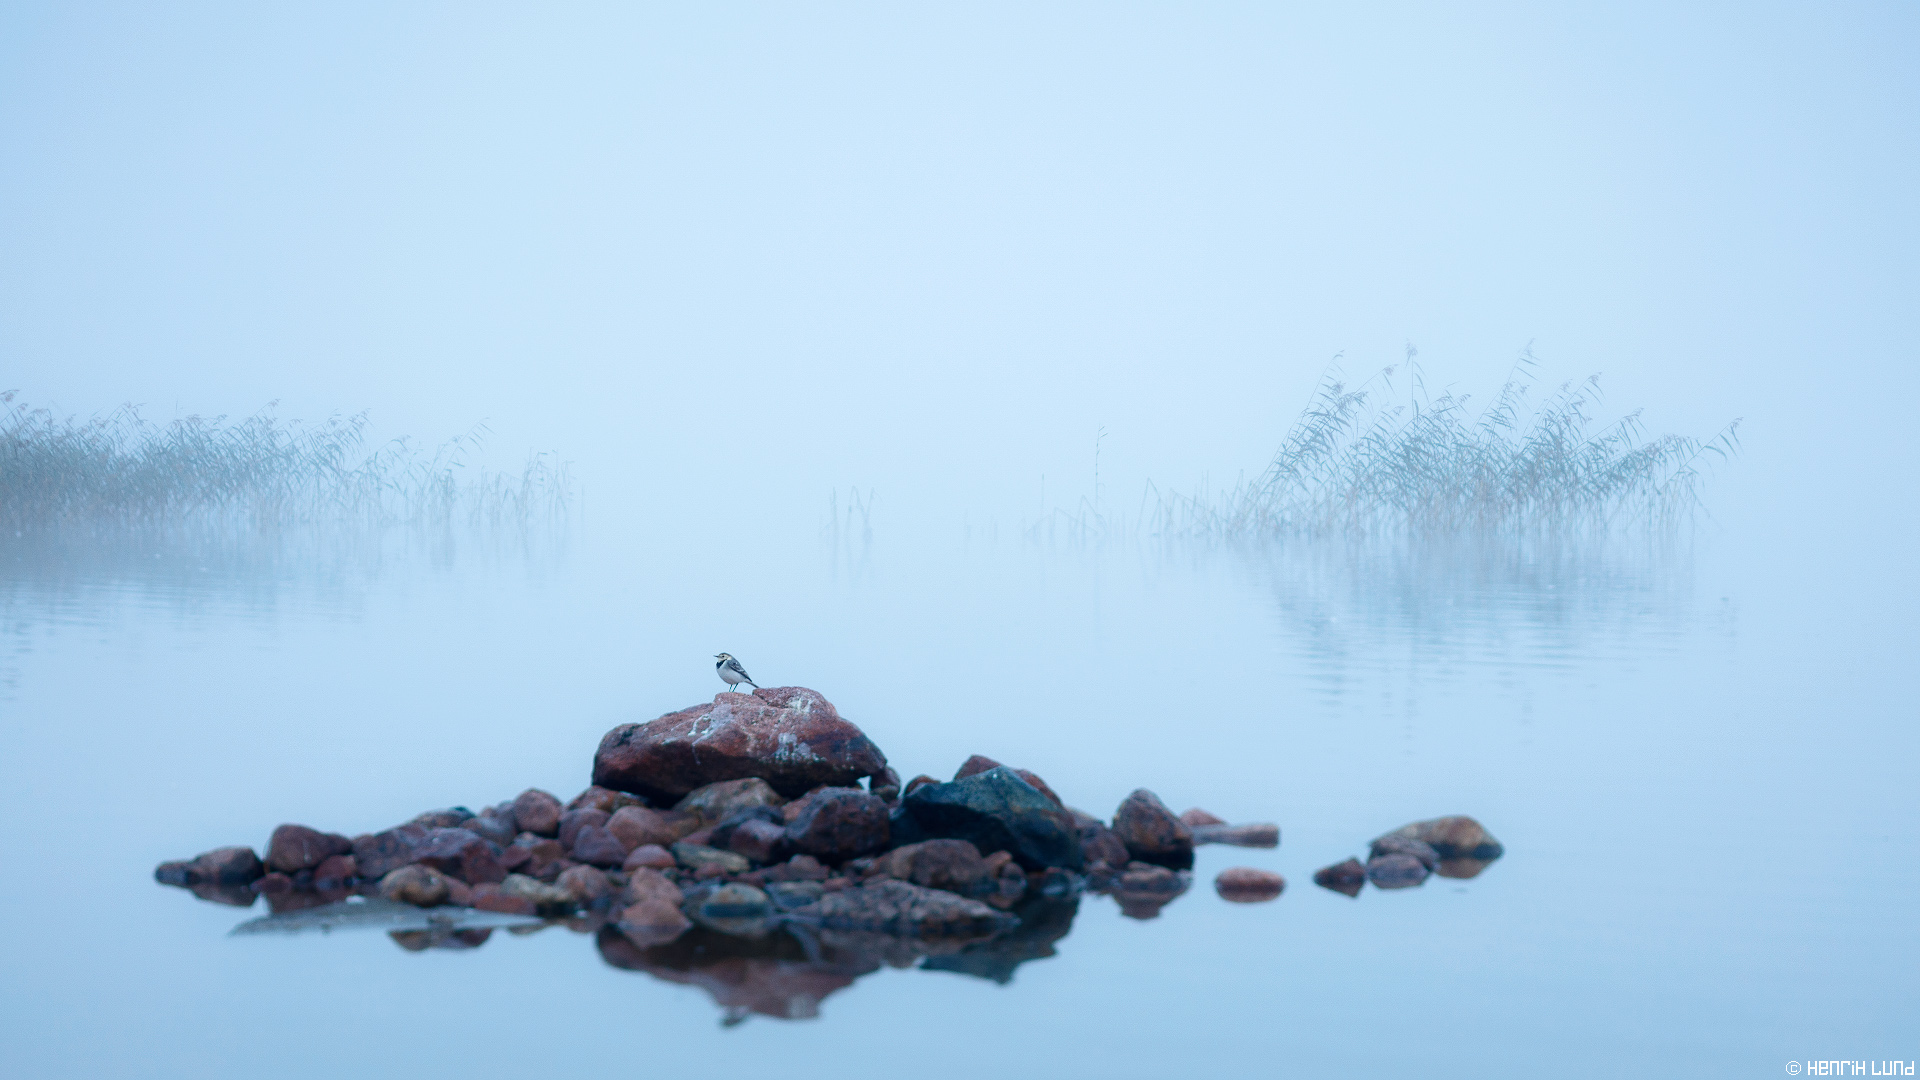 White wagtail posing in early morning mist at lake Lapinjärvi, Finland, September 2015.